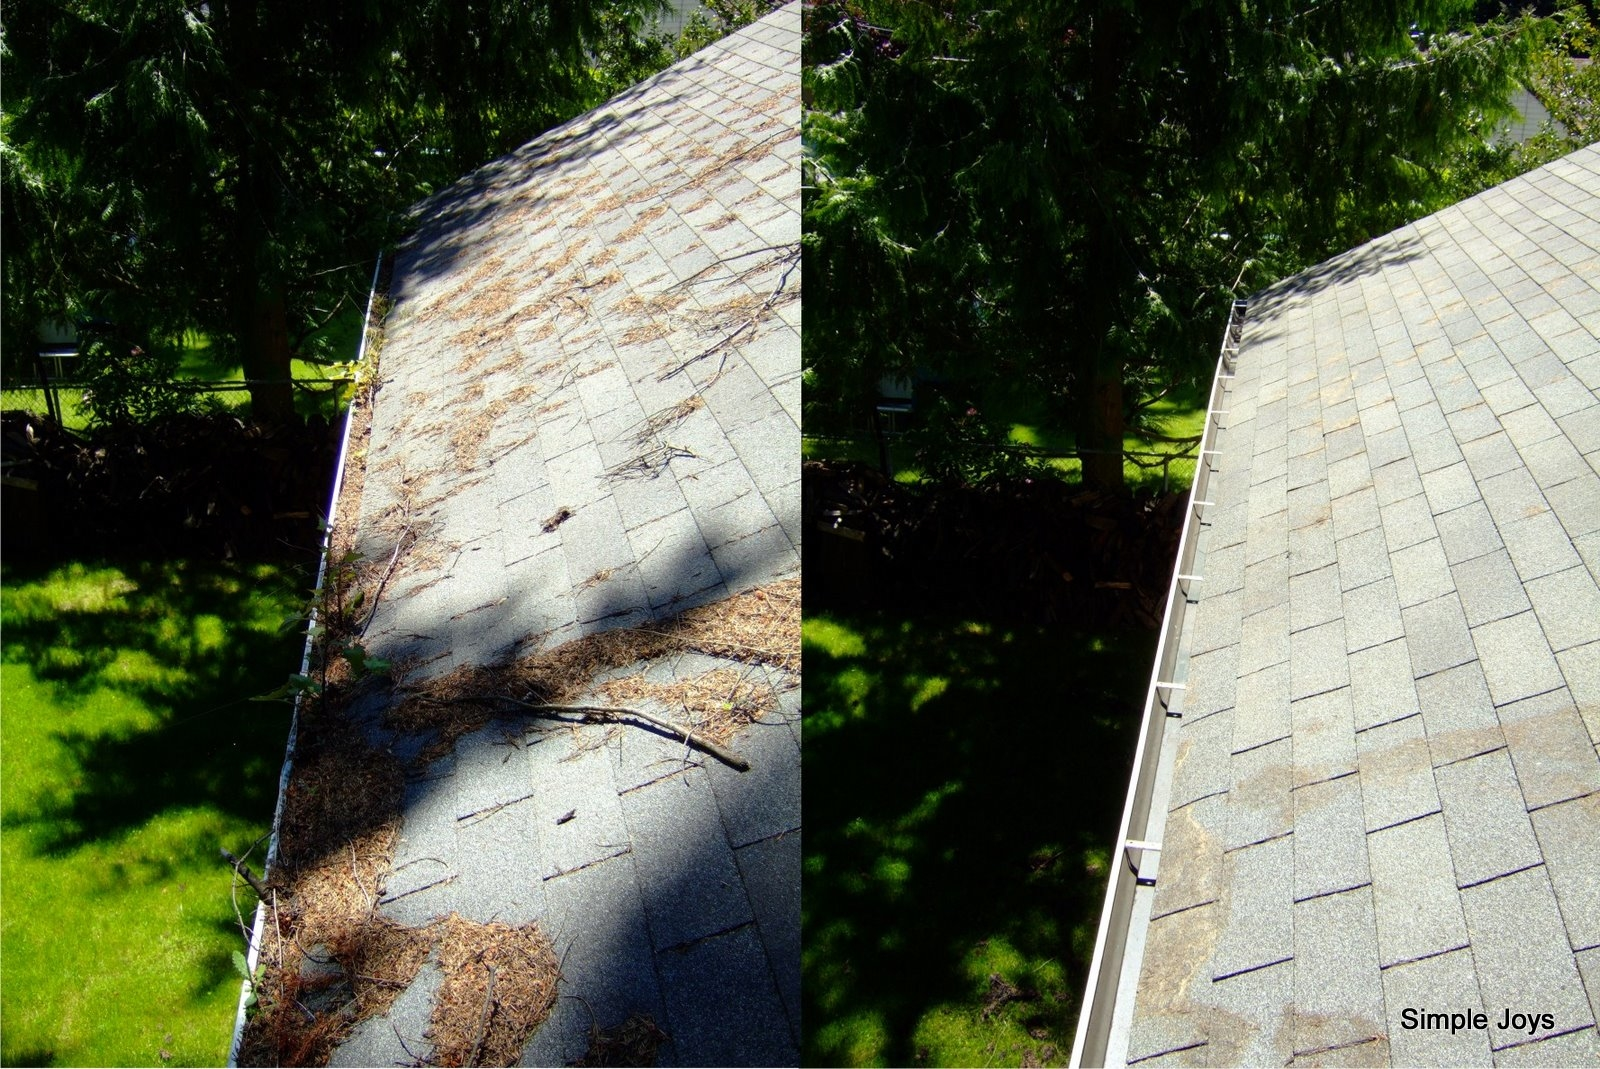 Simple Joys, Roof, Gutter, Window, Chimney, Dryer Vent Cleaning - Seattle, WA